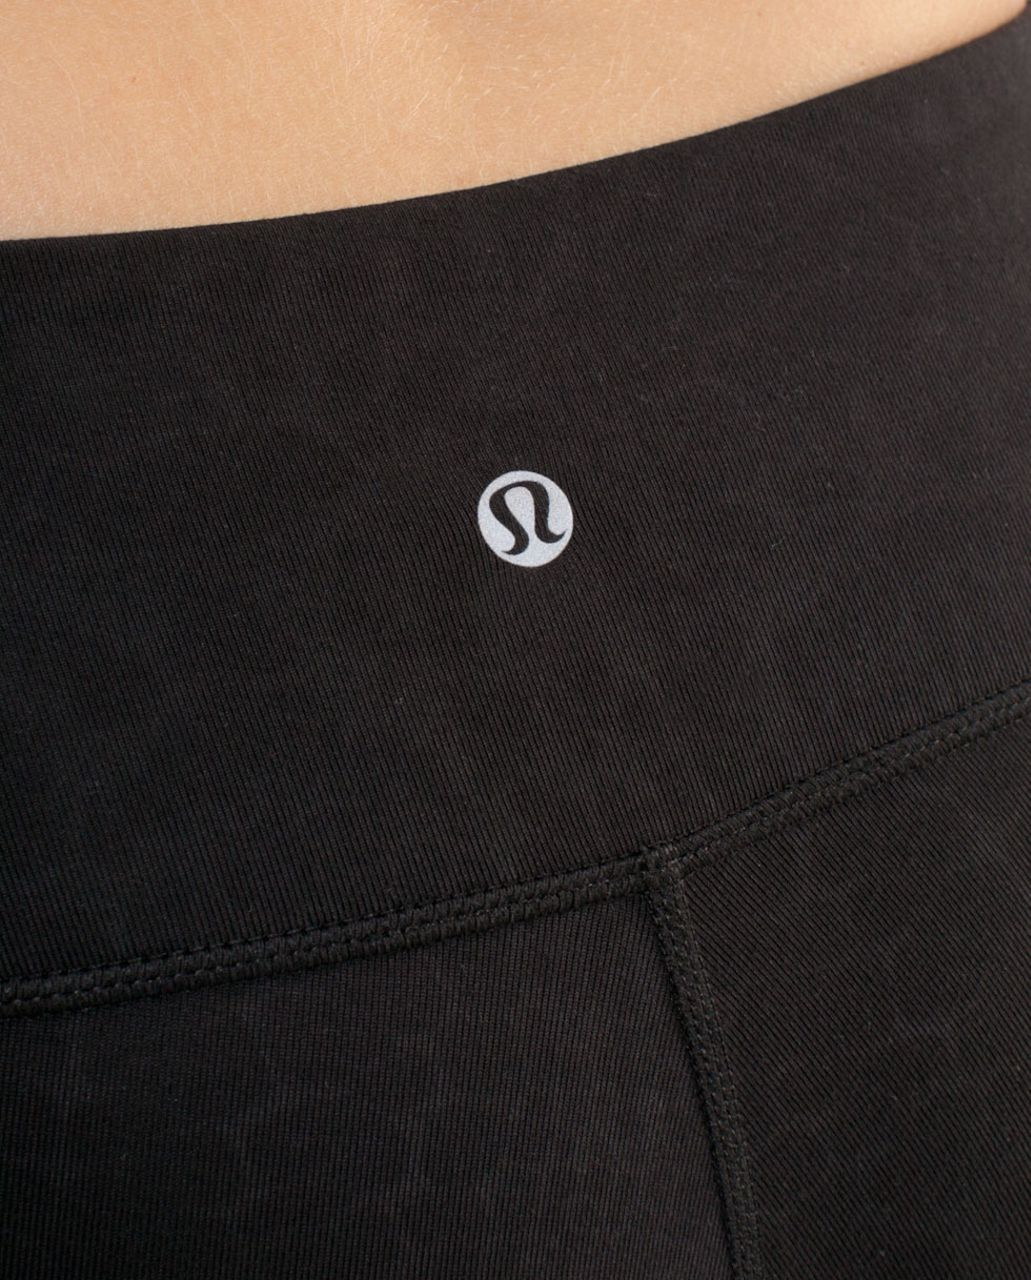 Lululemon Wunder Under Crop - Black Glacier Lace Embossed /  Black